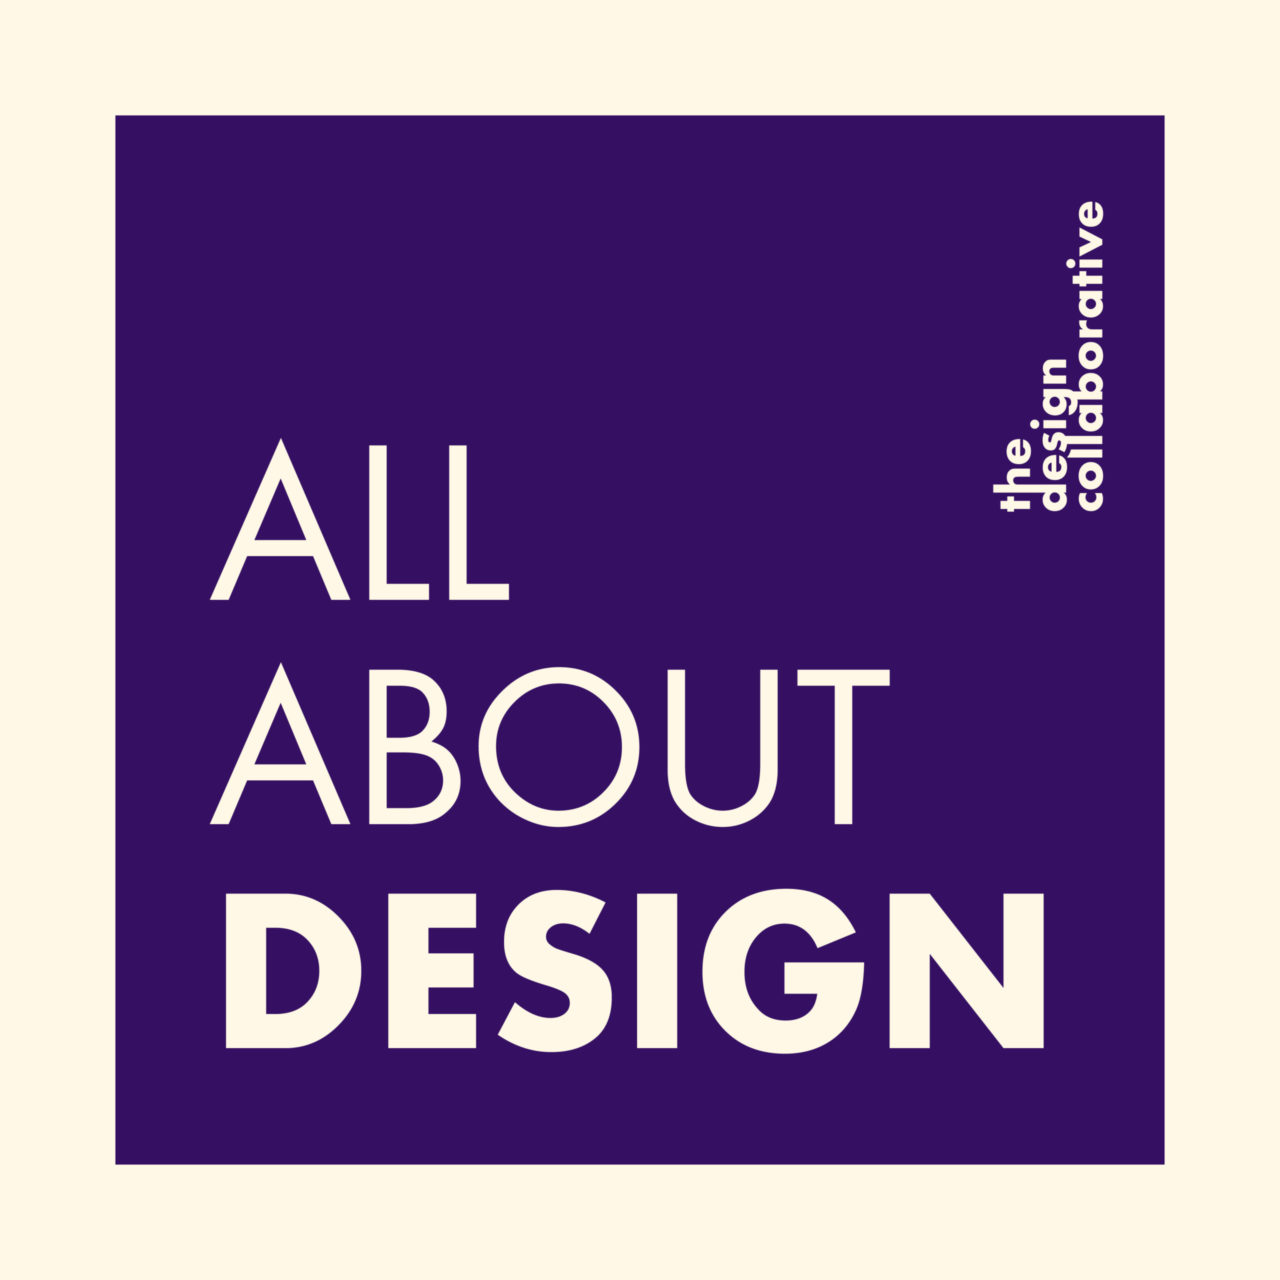 All About Design - The Design Collaborative